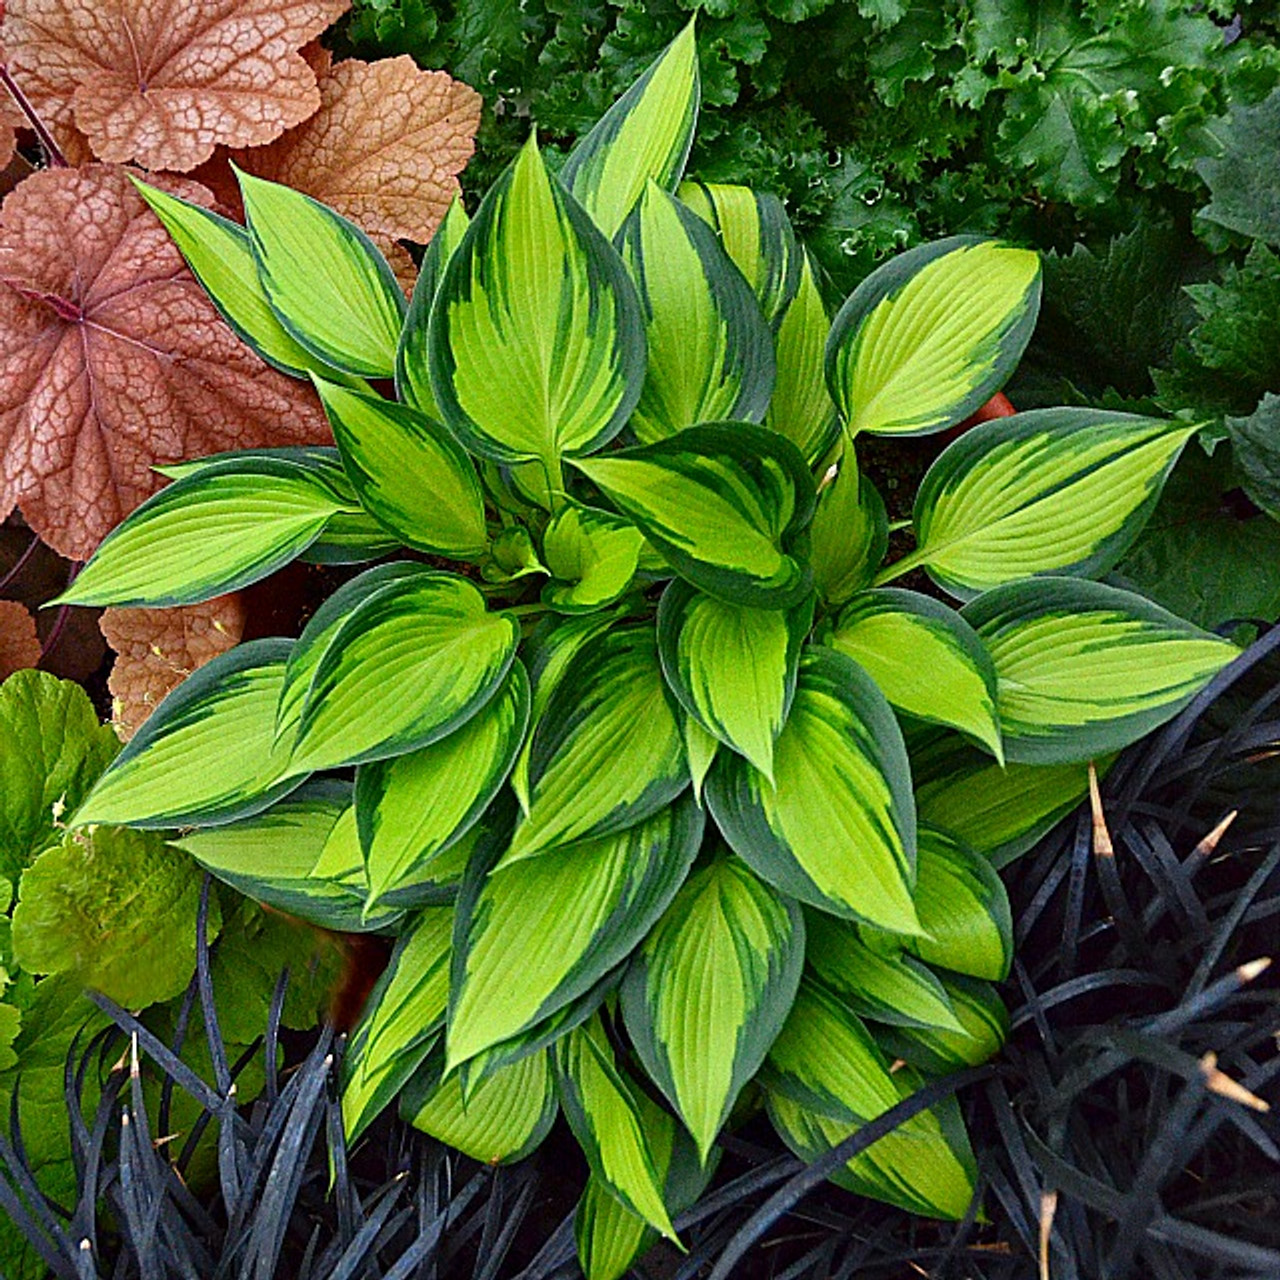 June Spirit Hosta Shade Perennial Sun Tolerant Hosta Plant